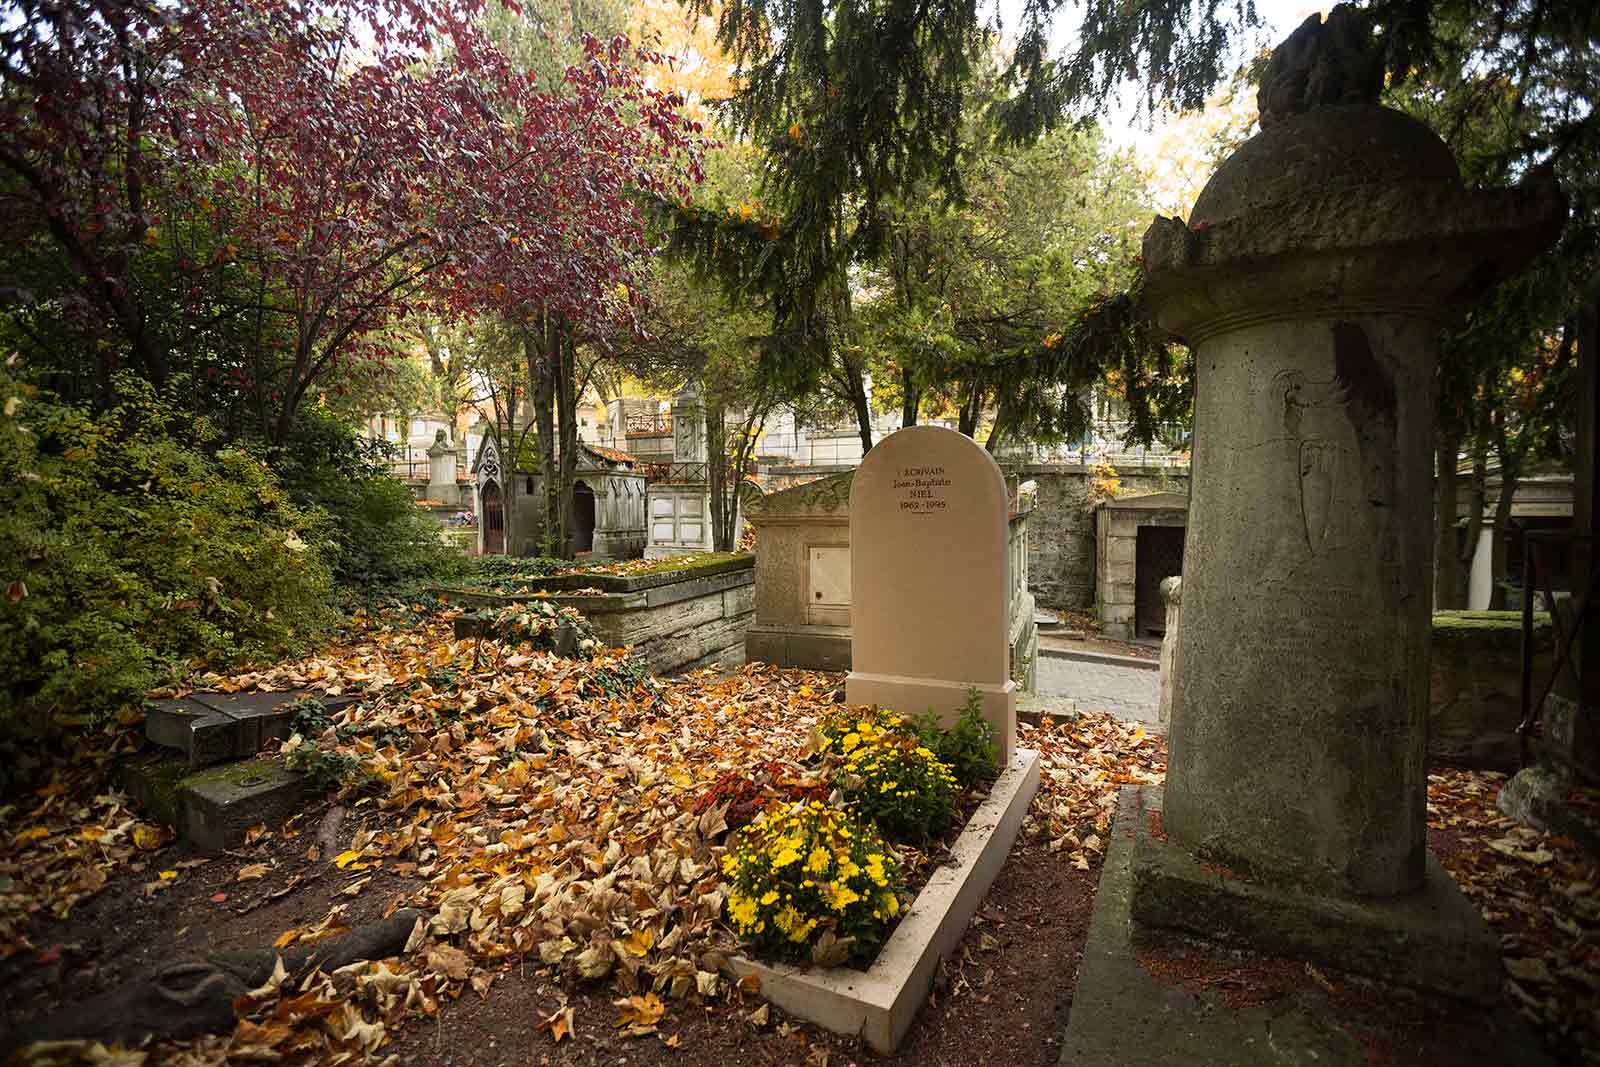 I imagine that Pere Lachaise cemetery is worth a visit anytime of the year, but during autumn this place seems even more mystical...